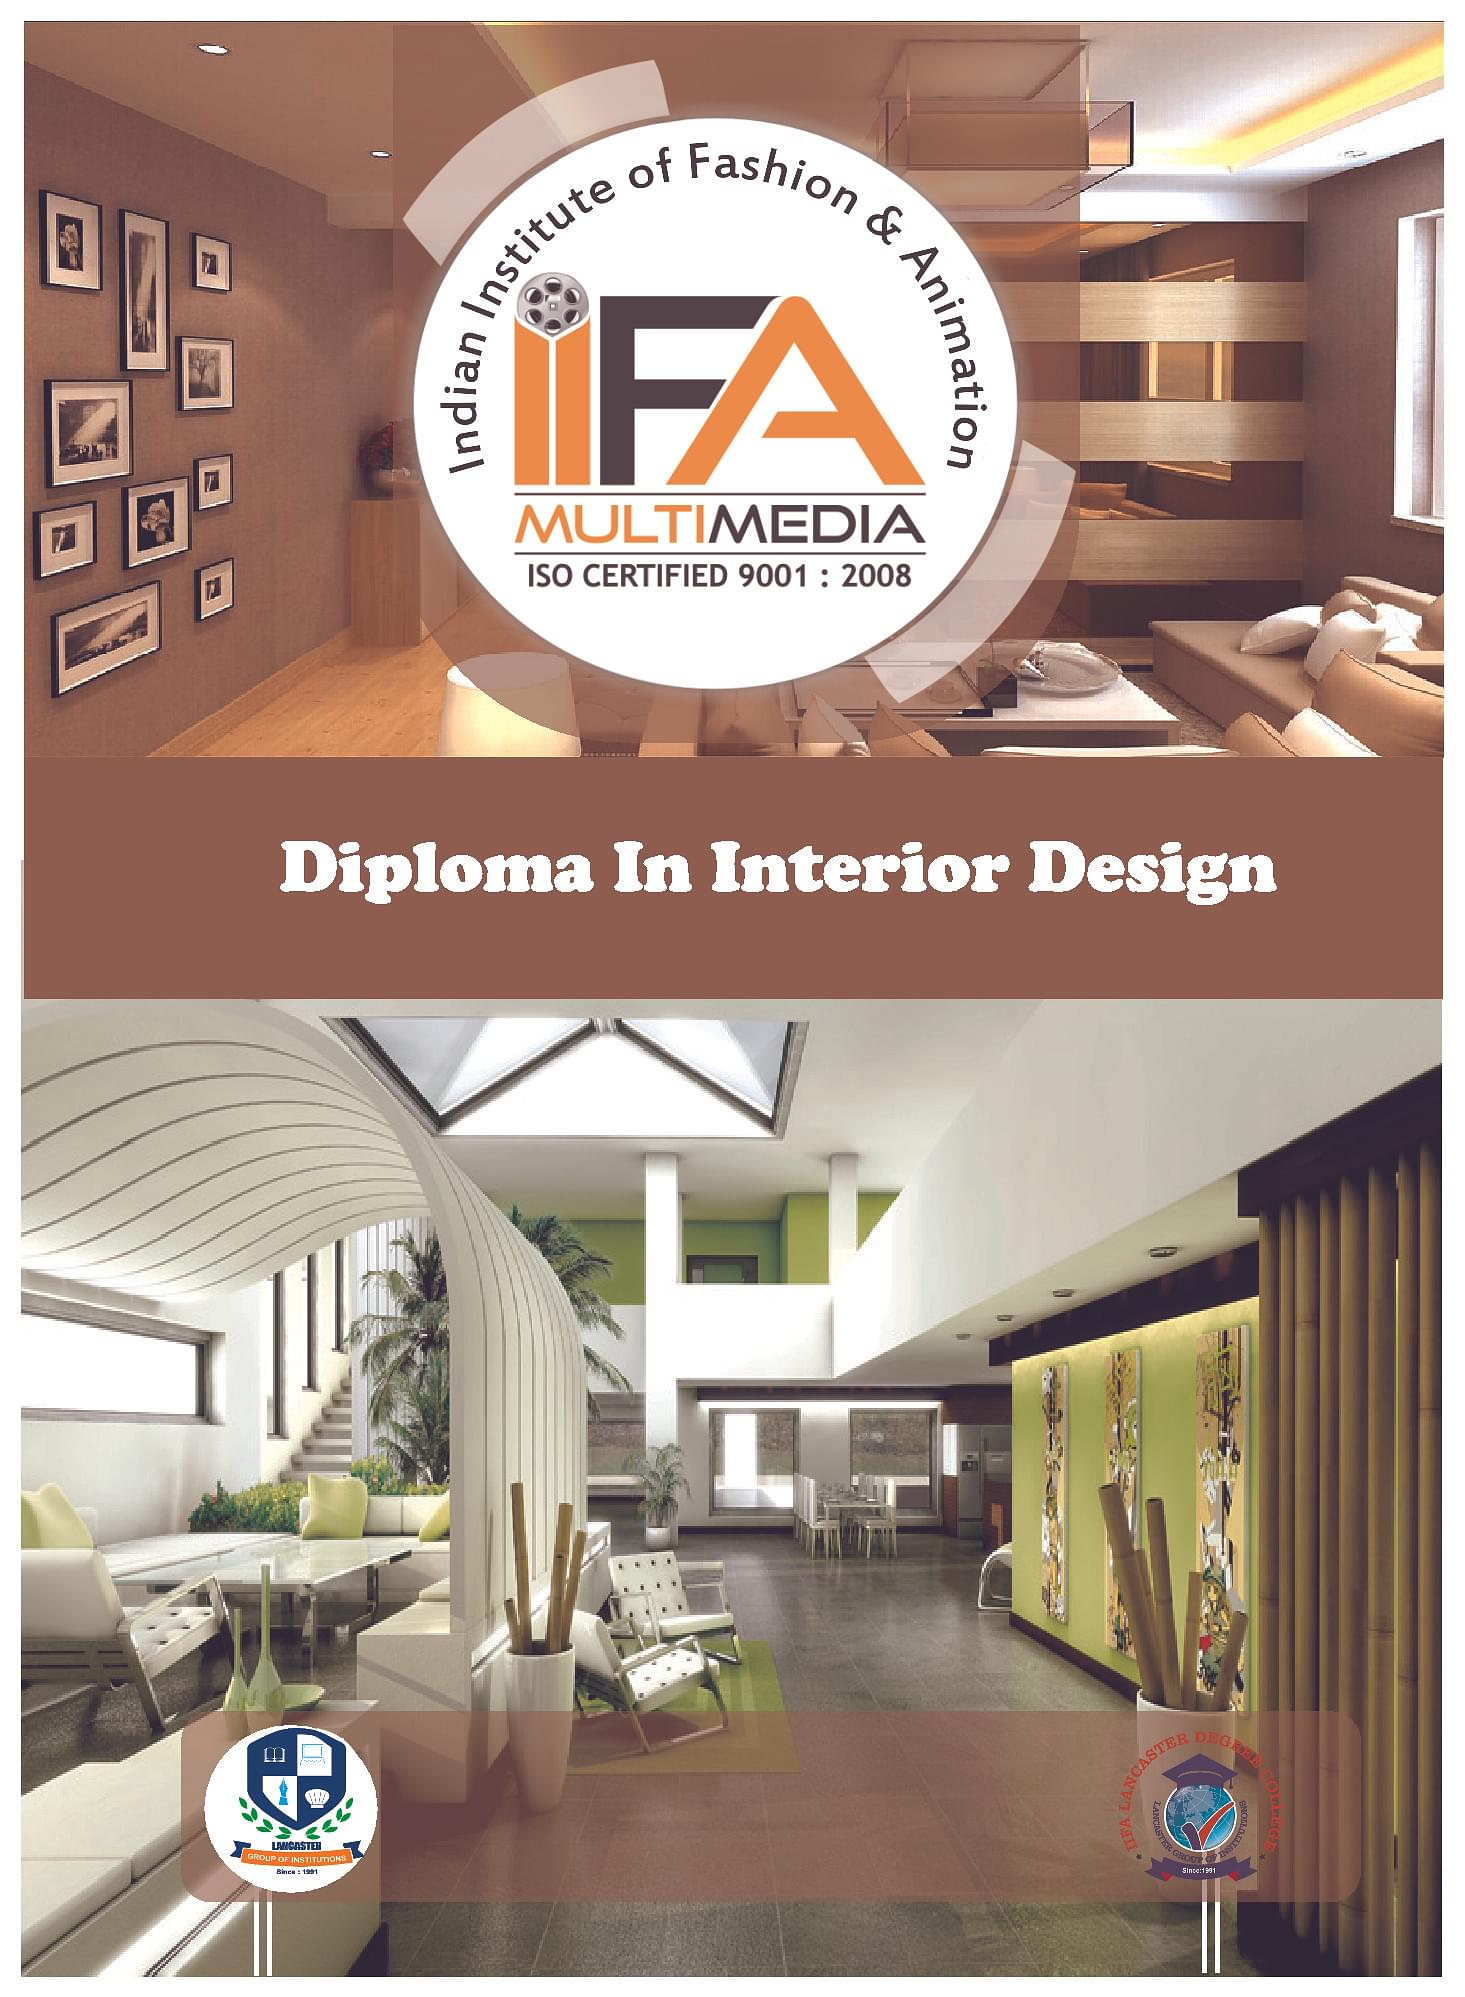 Iifa multimedia bangalore admissions contact website - Interior designing colleges in bangalore ...